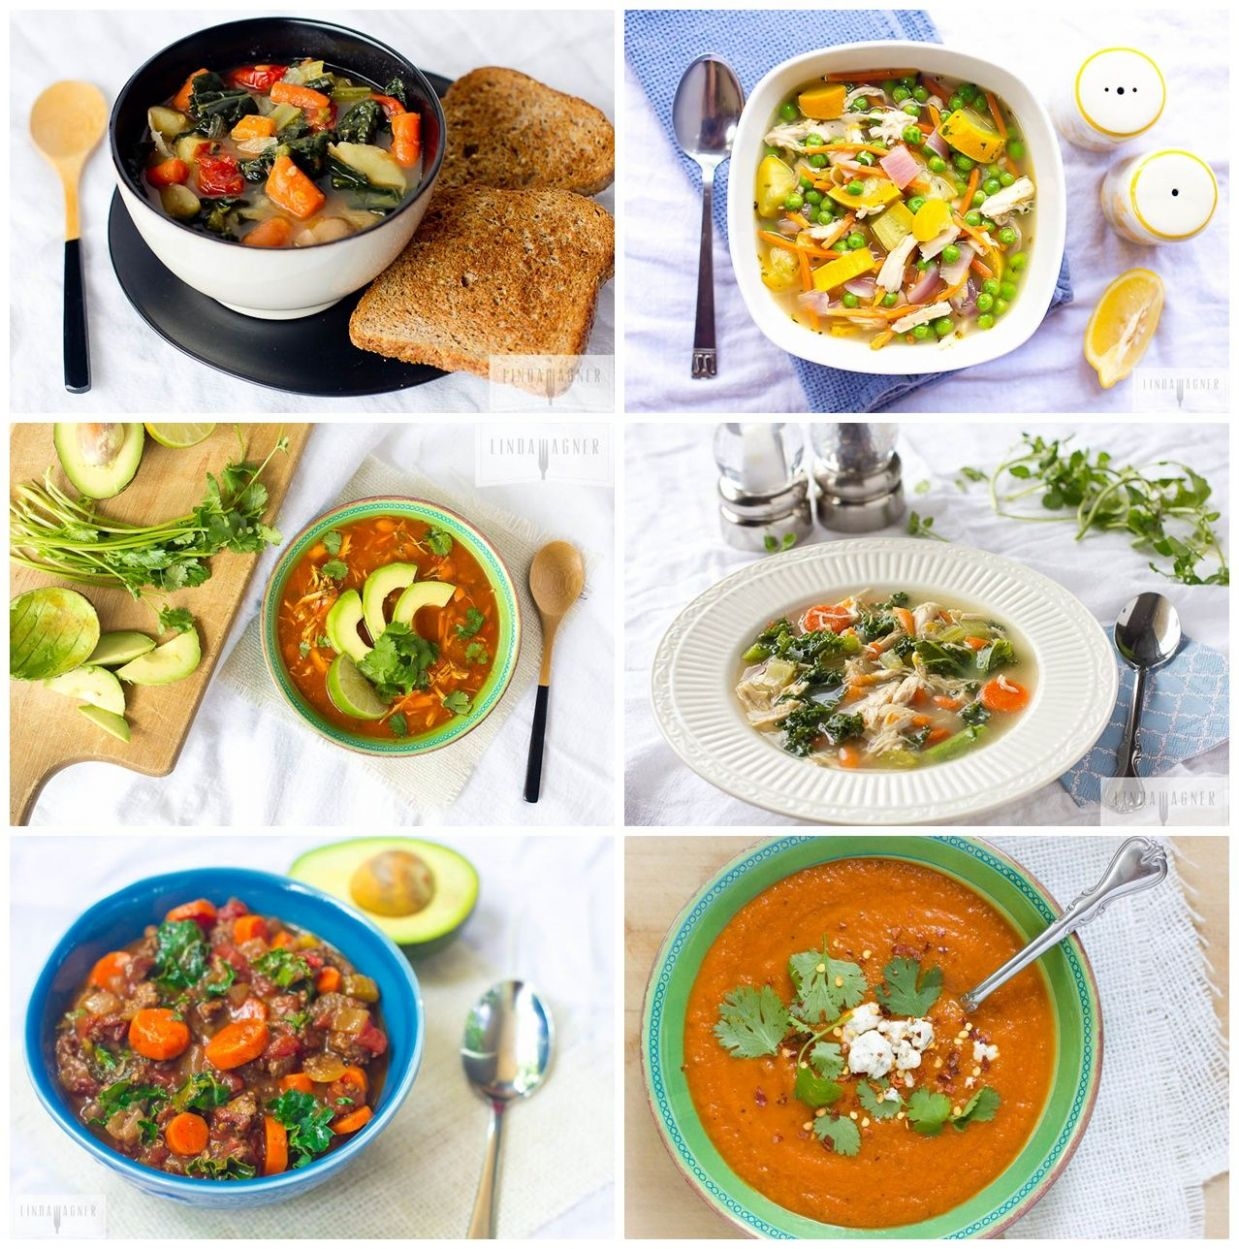 12 Effective Diet Tips To Loose Weight | Soup diet plan, Soup ...